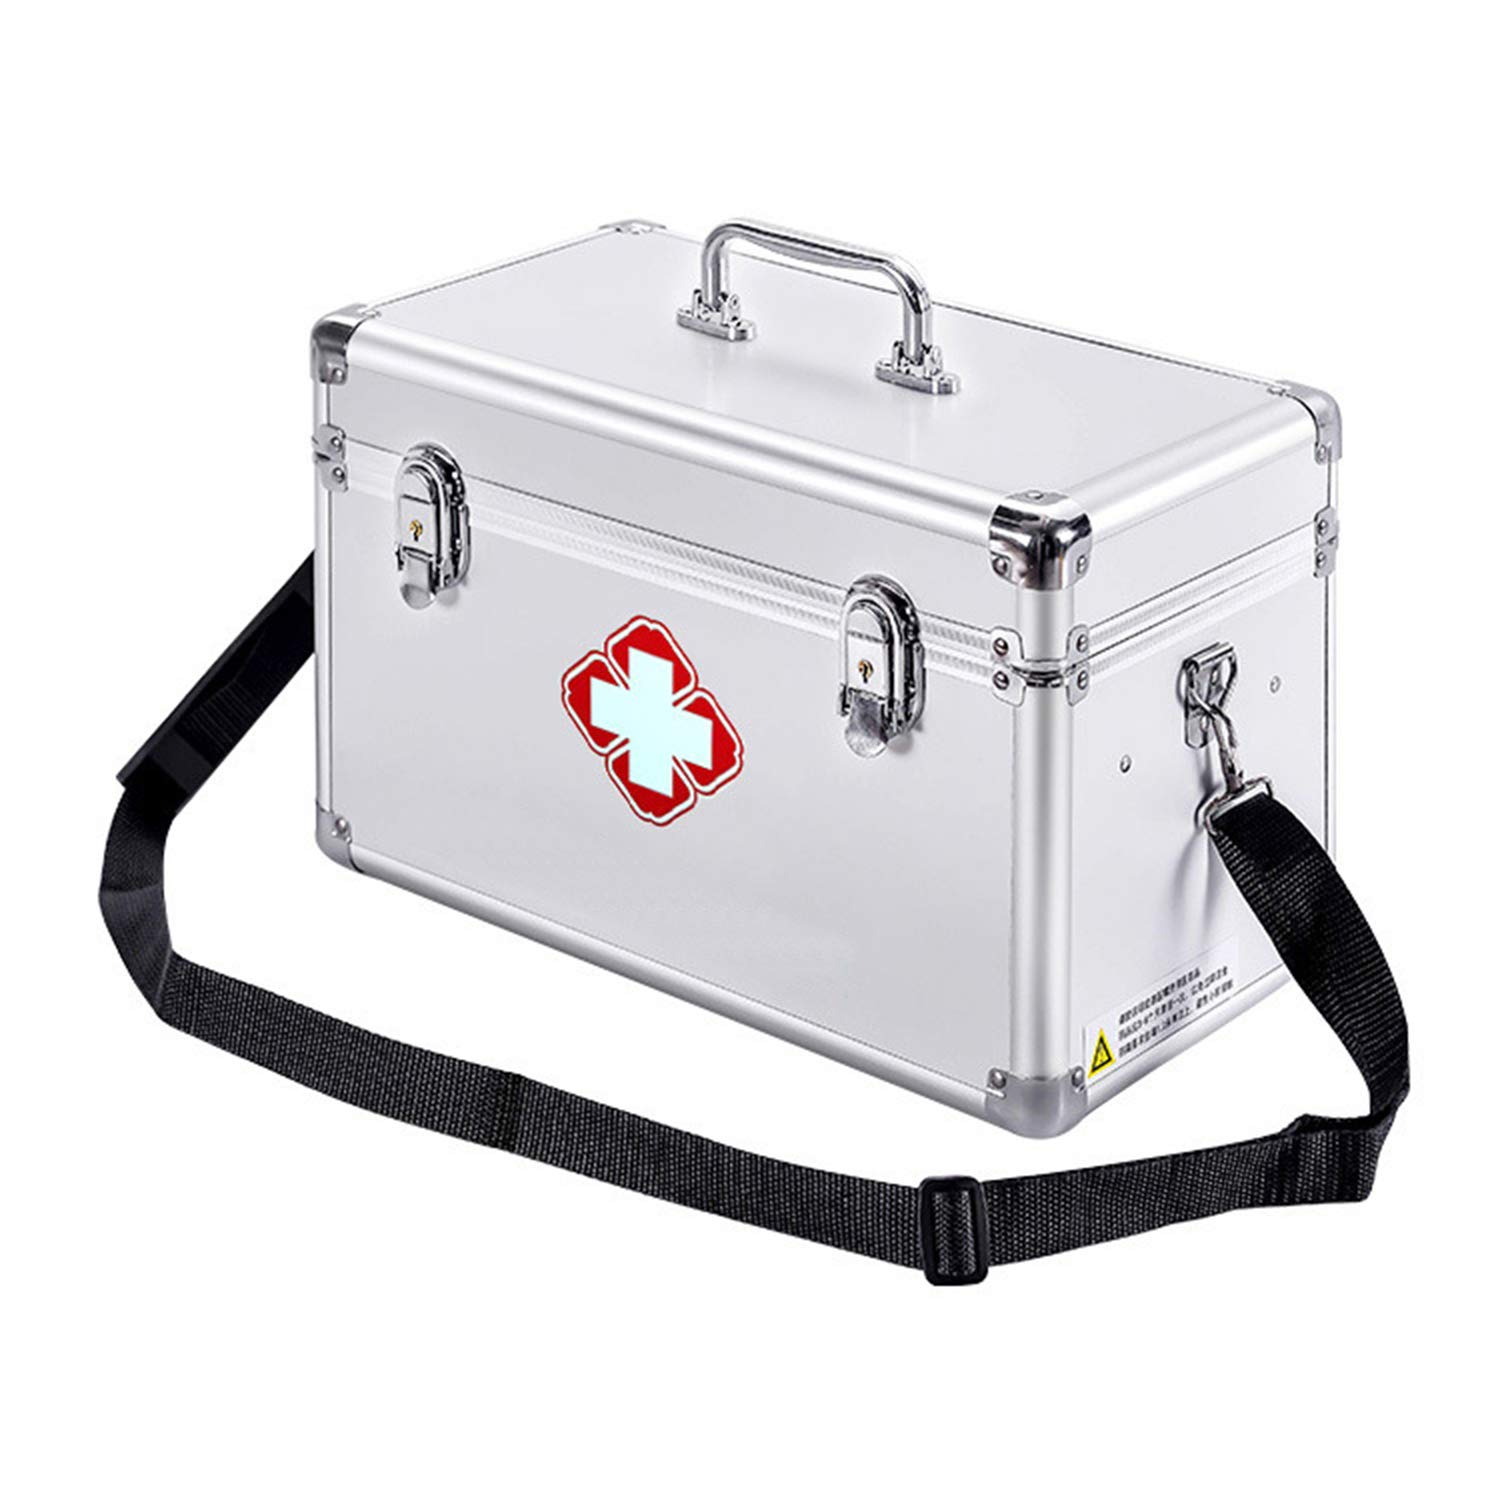 KDC Medicine Storage Box-Lock Medicine Cabinet-w/Shoulder Strap Medicine Compartments First Aid Box Medical Precription Storage Box 11.8 x 6.9 x 7.5 inches, Aluminum (Silver) by KDC